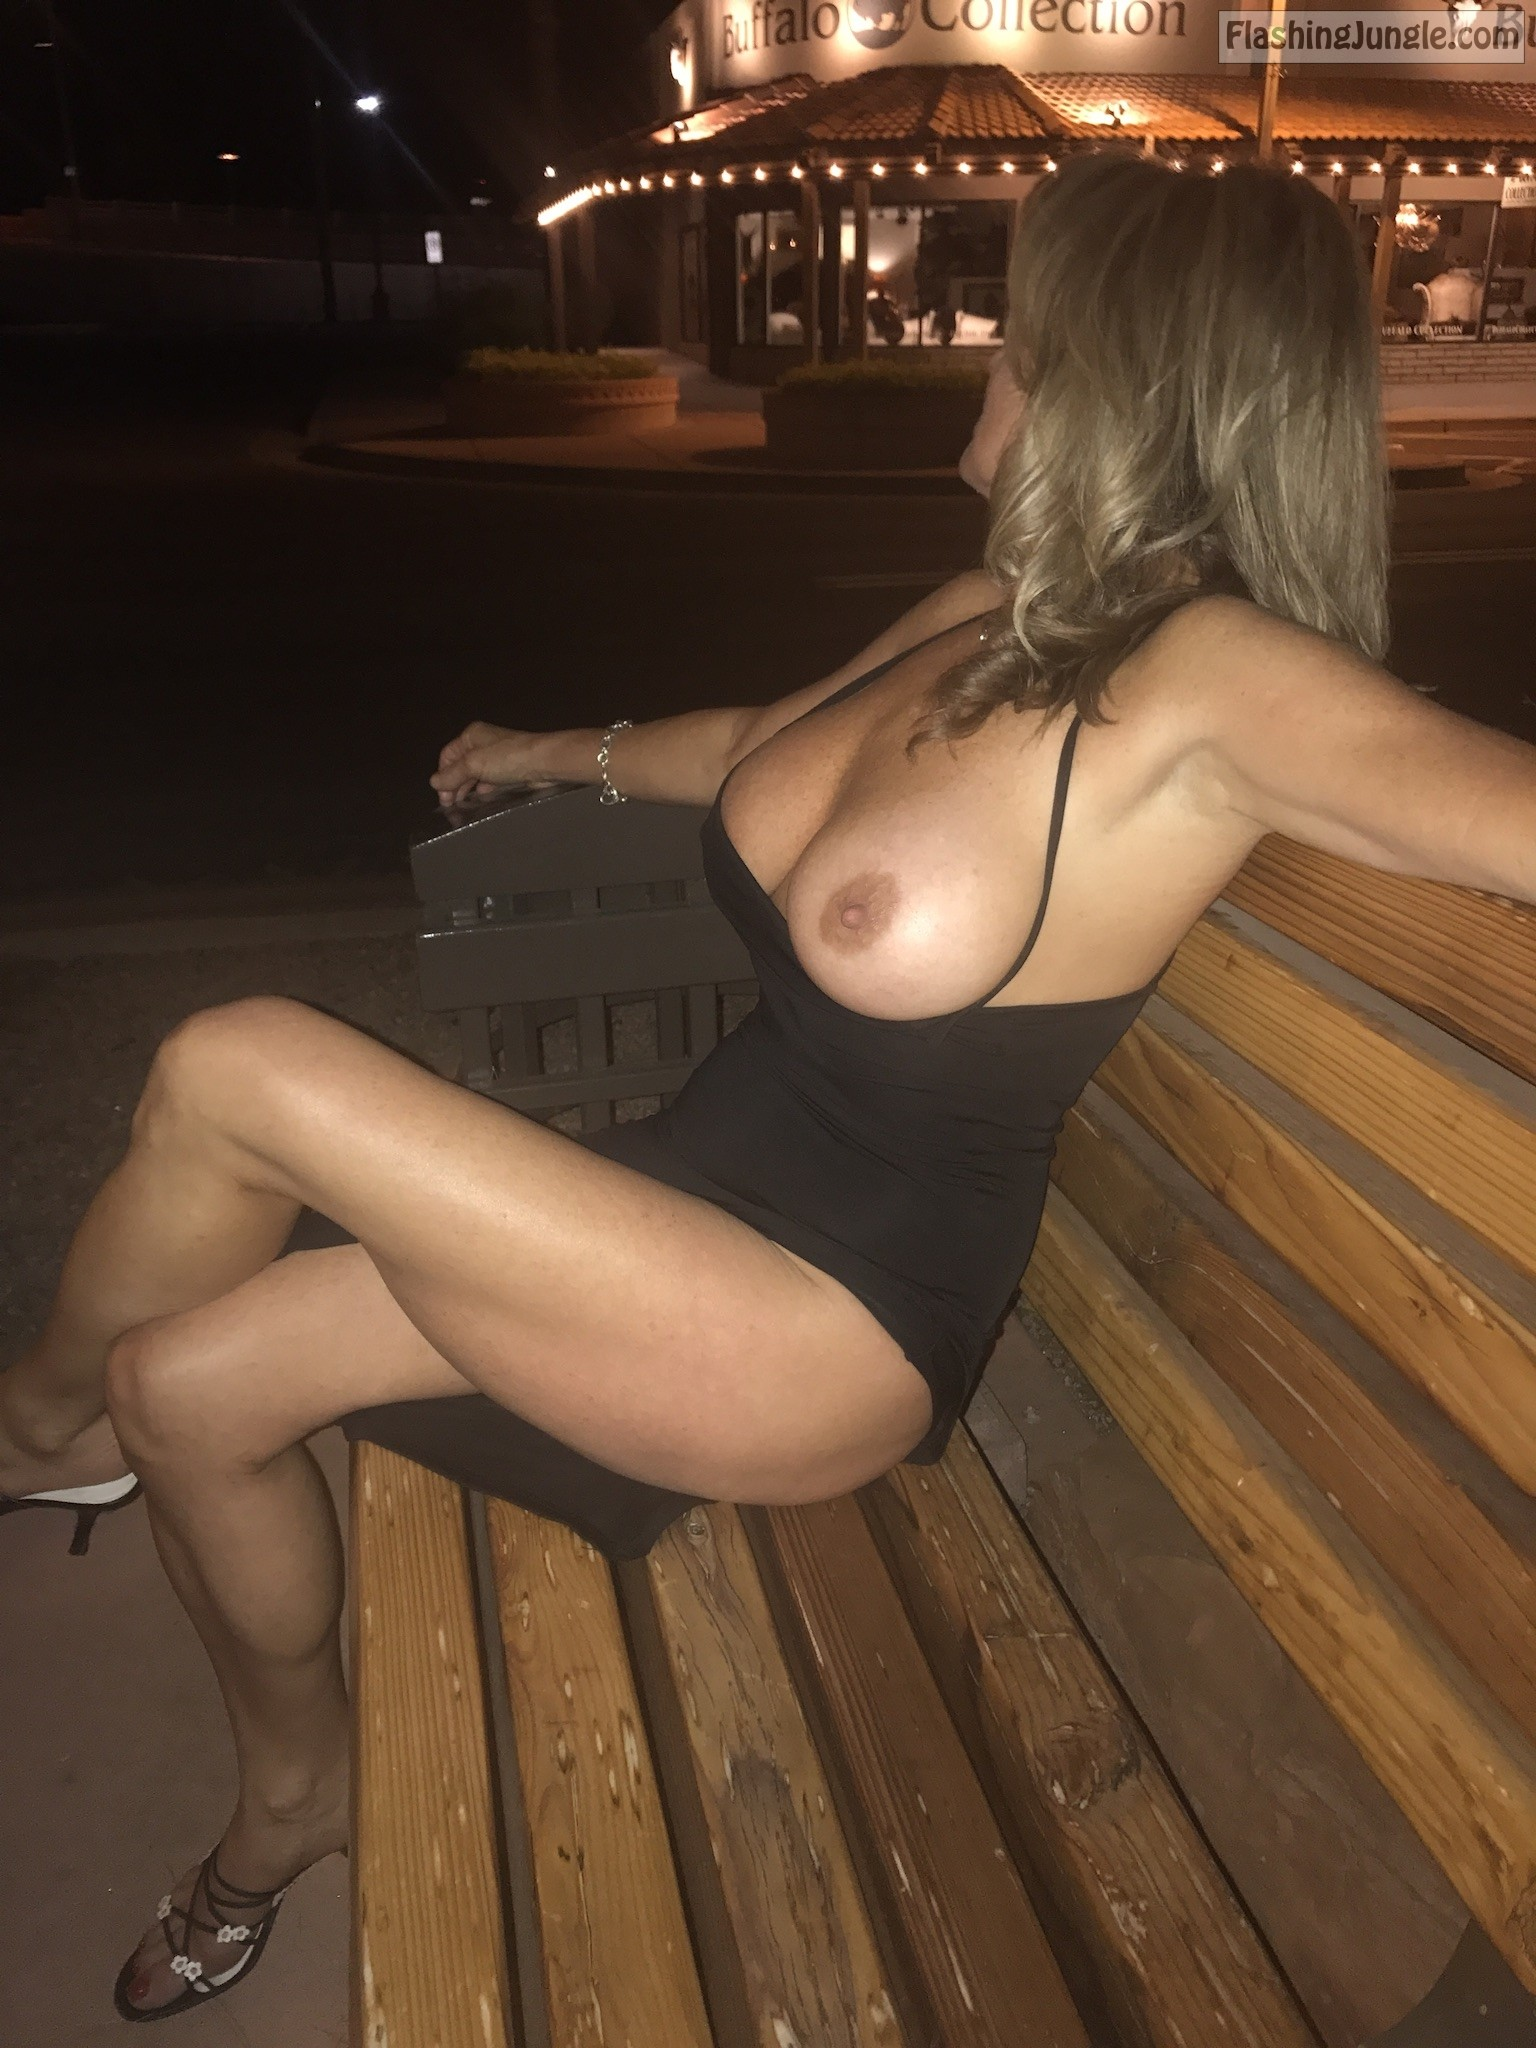 Johns Sexy Wife Flashing Boobs Outdoors Boobs Flash Pics -6015